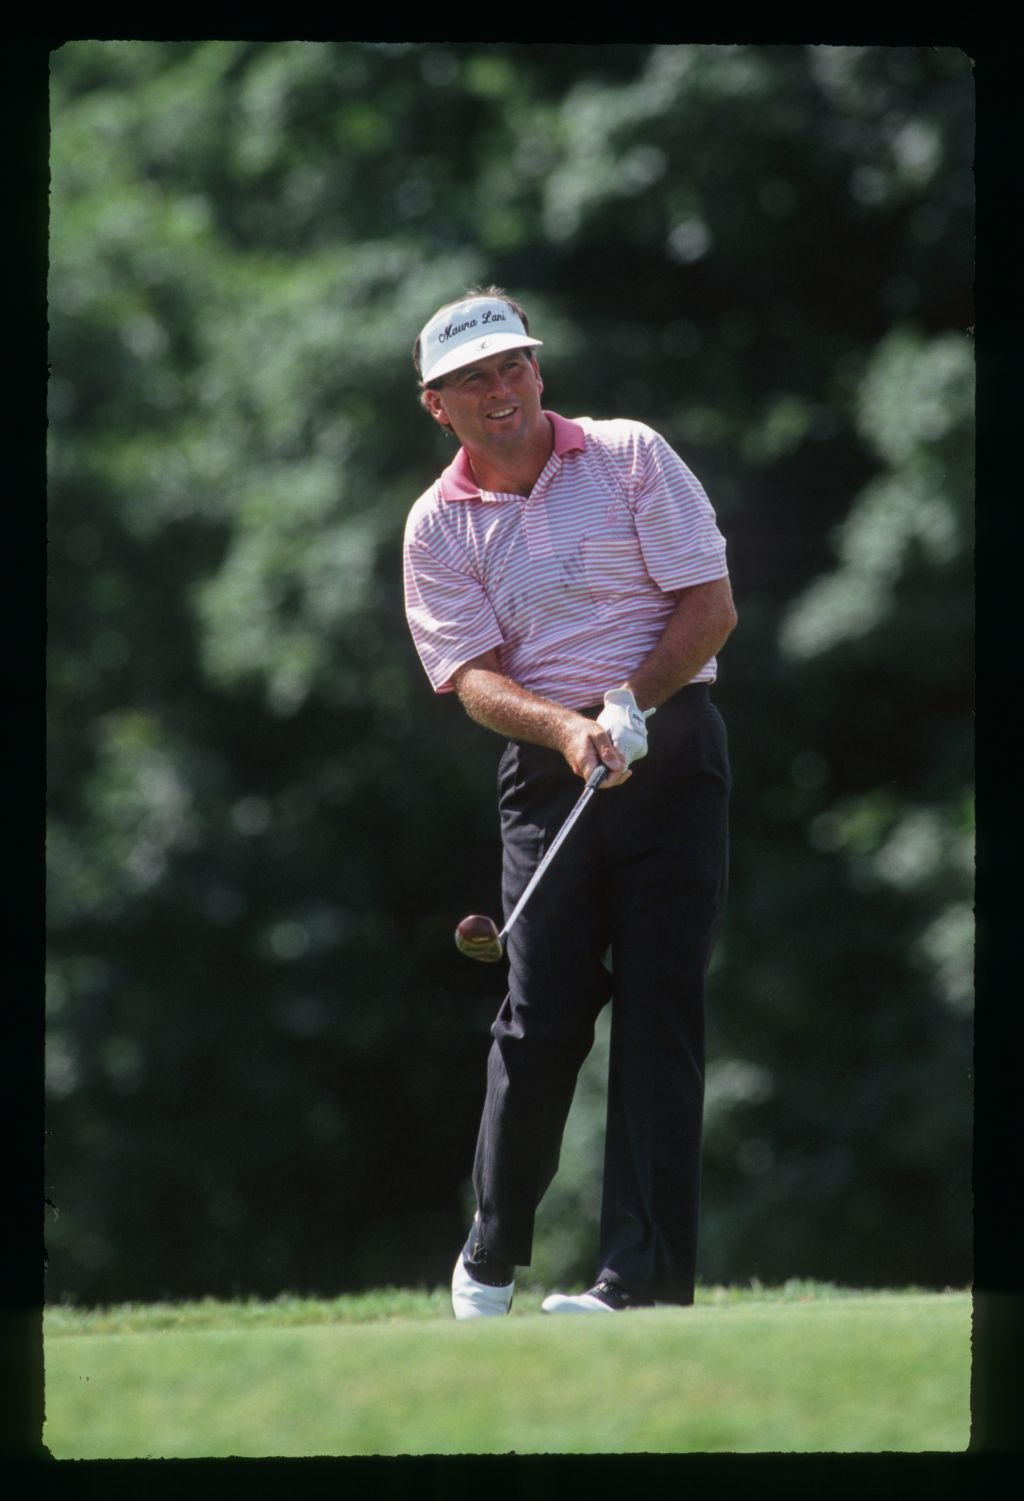 Golfer Lanny Wadkins on the tee at Hazeltine during the 1991 United States Open Championship